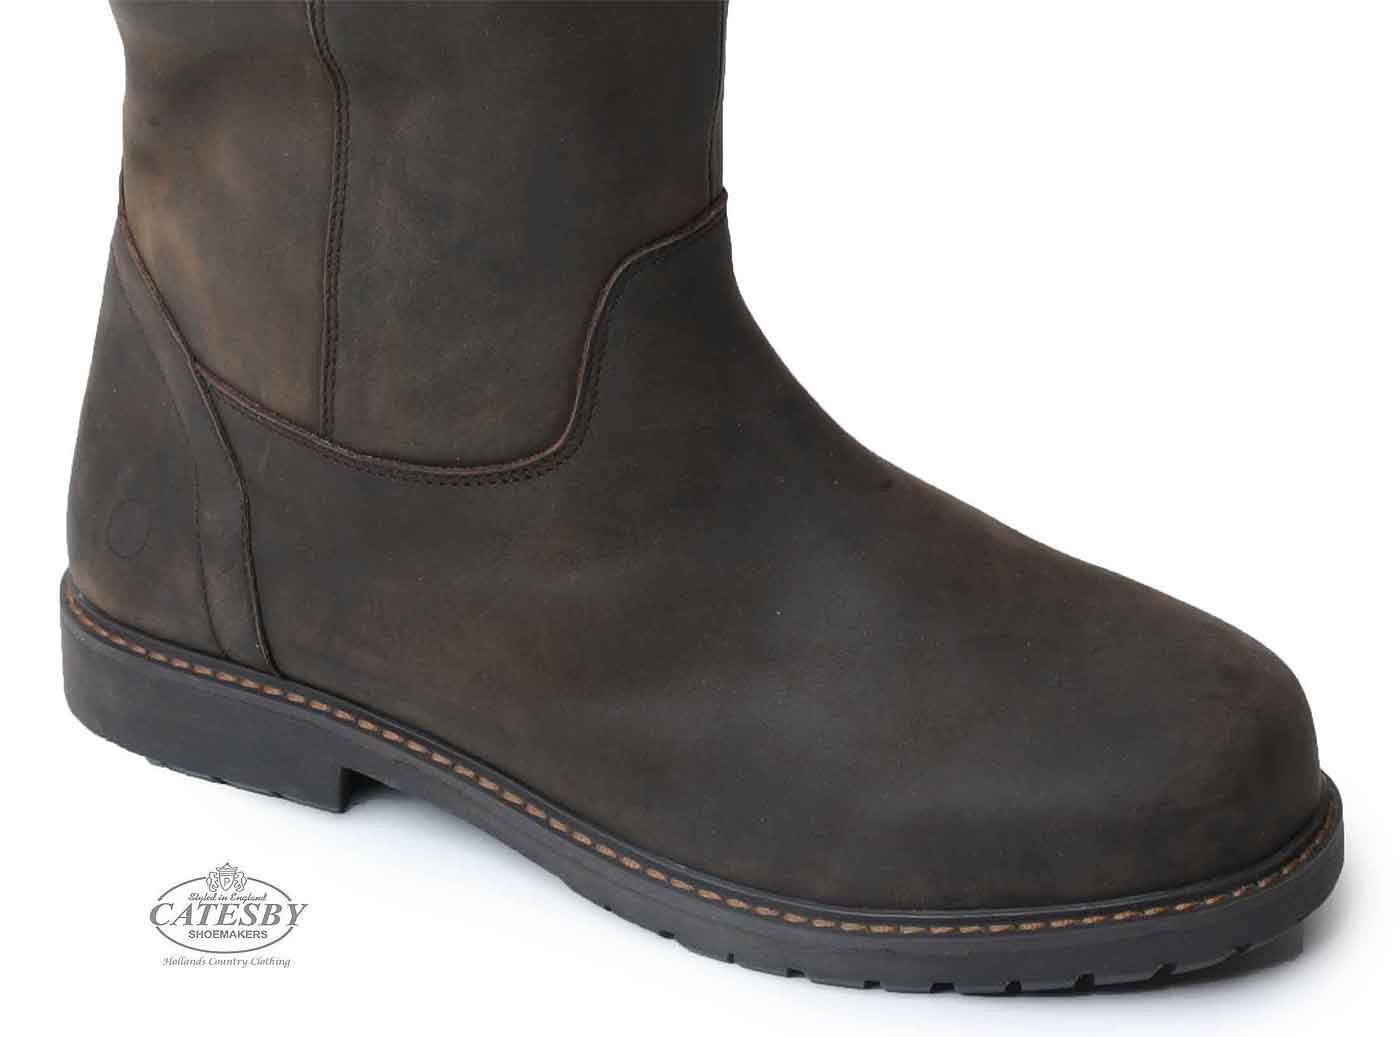 foot detail Catesby Moreton Men's Waterproof Leather  Knee High Country Boots